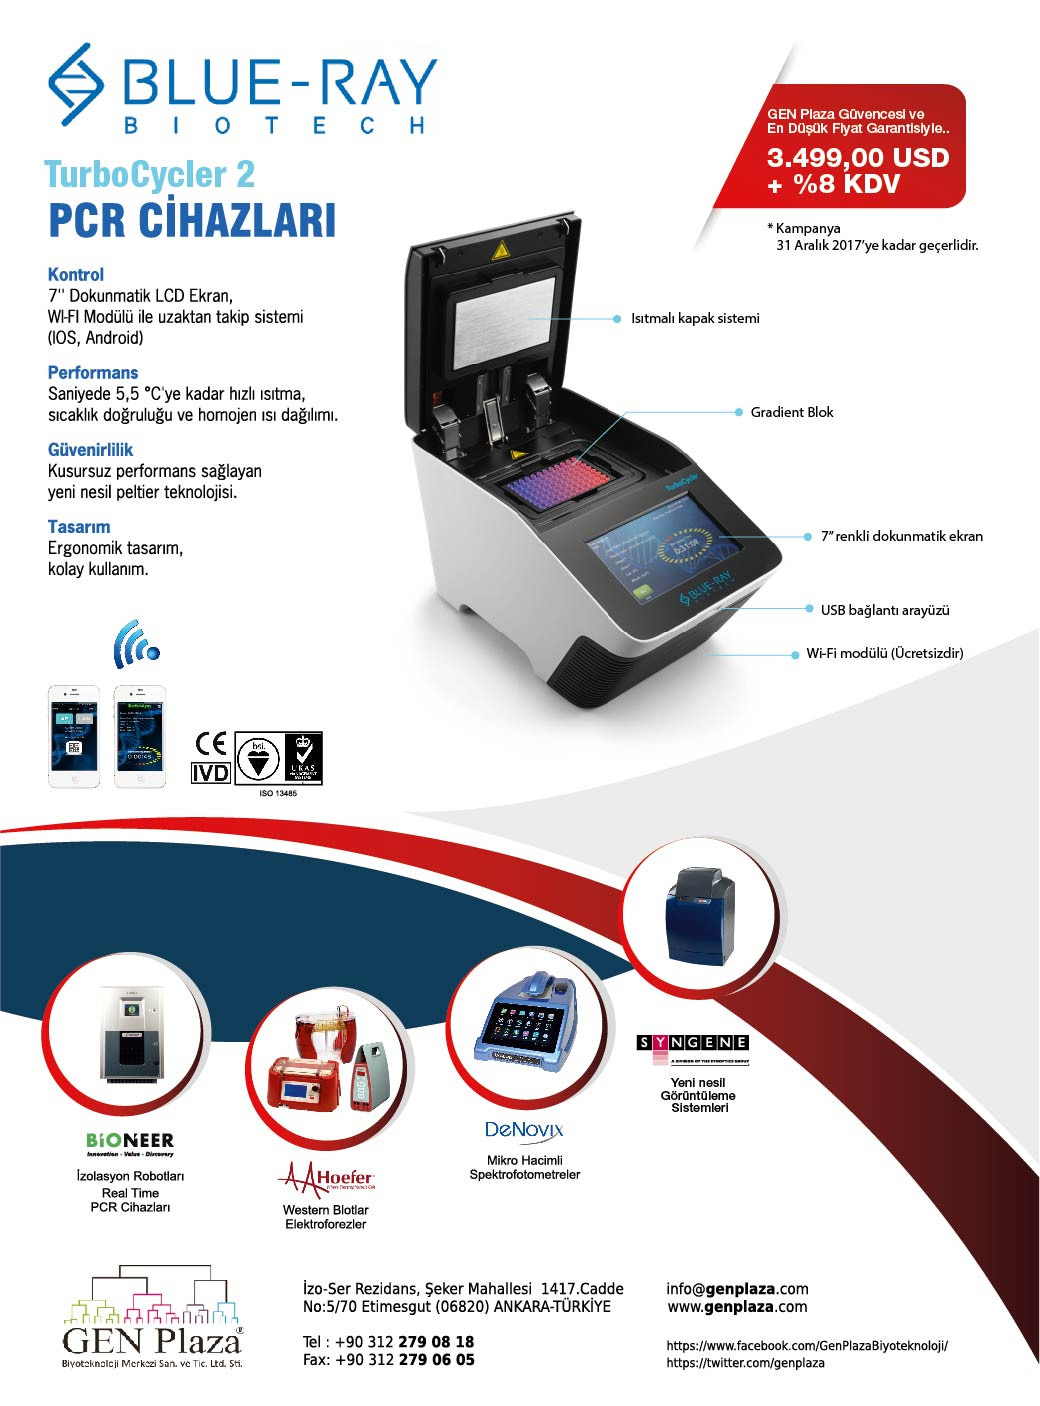 blue-ray, turbocycler, turbocycler 2, blueray pcr, pcr, thermal cycler, ısısal döngü cihazı, genplaza, GEN Plaza, biyoteknoloji